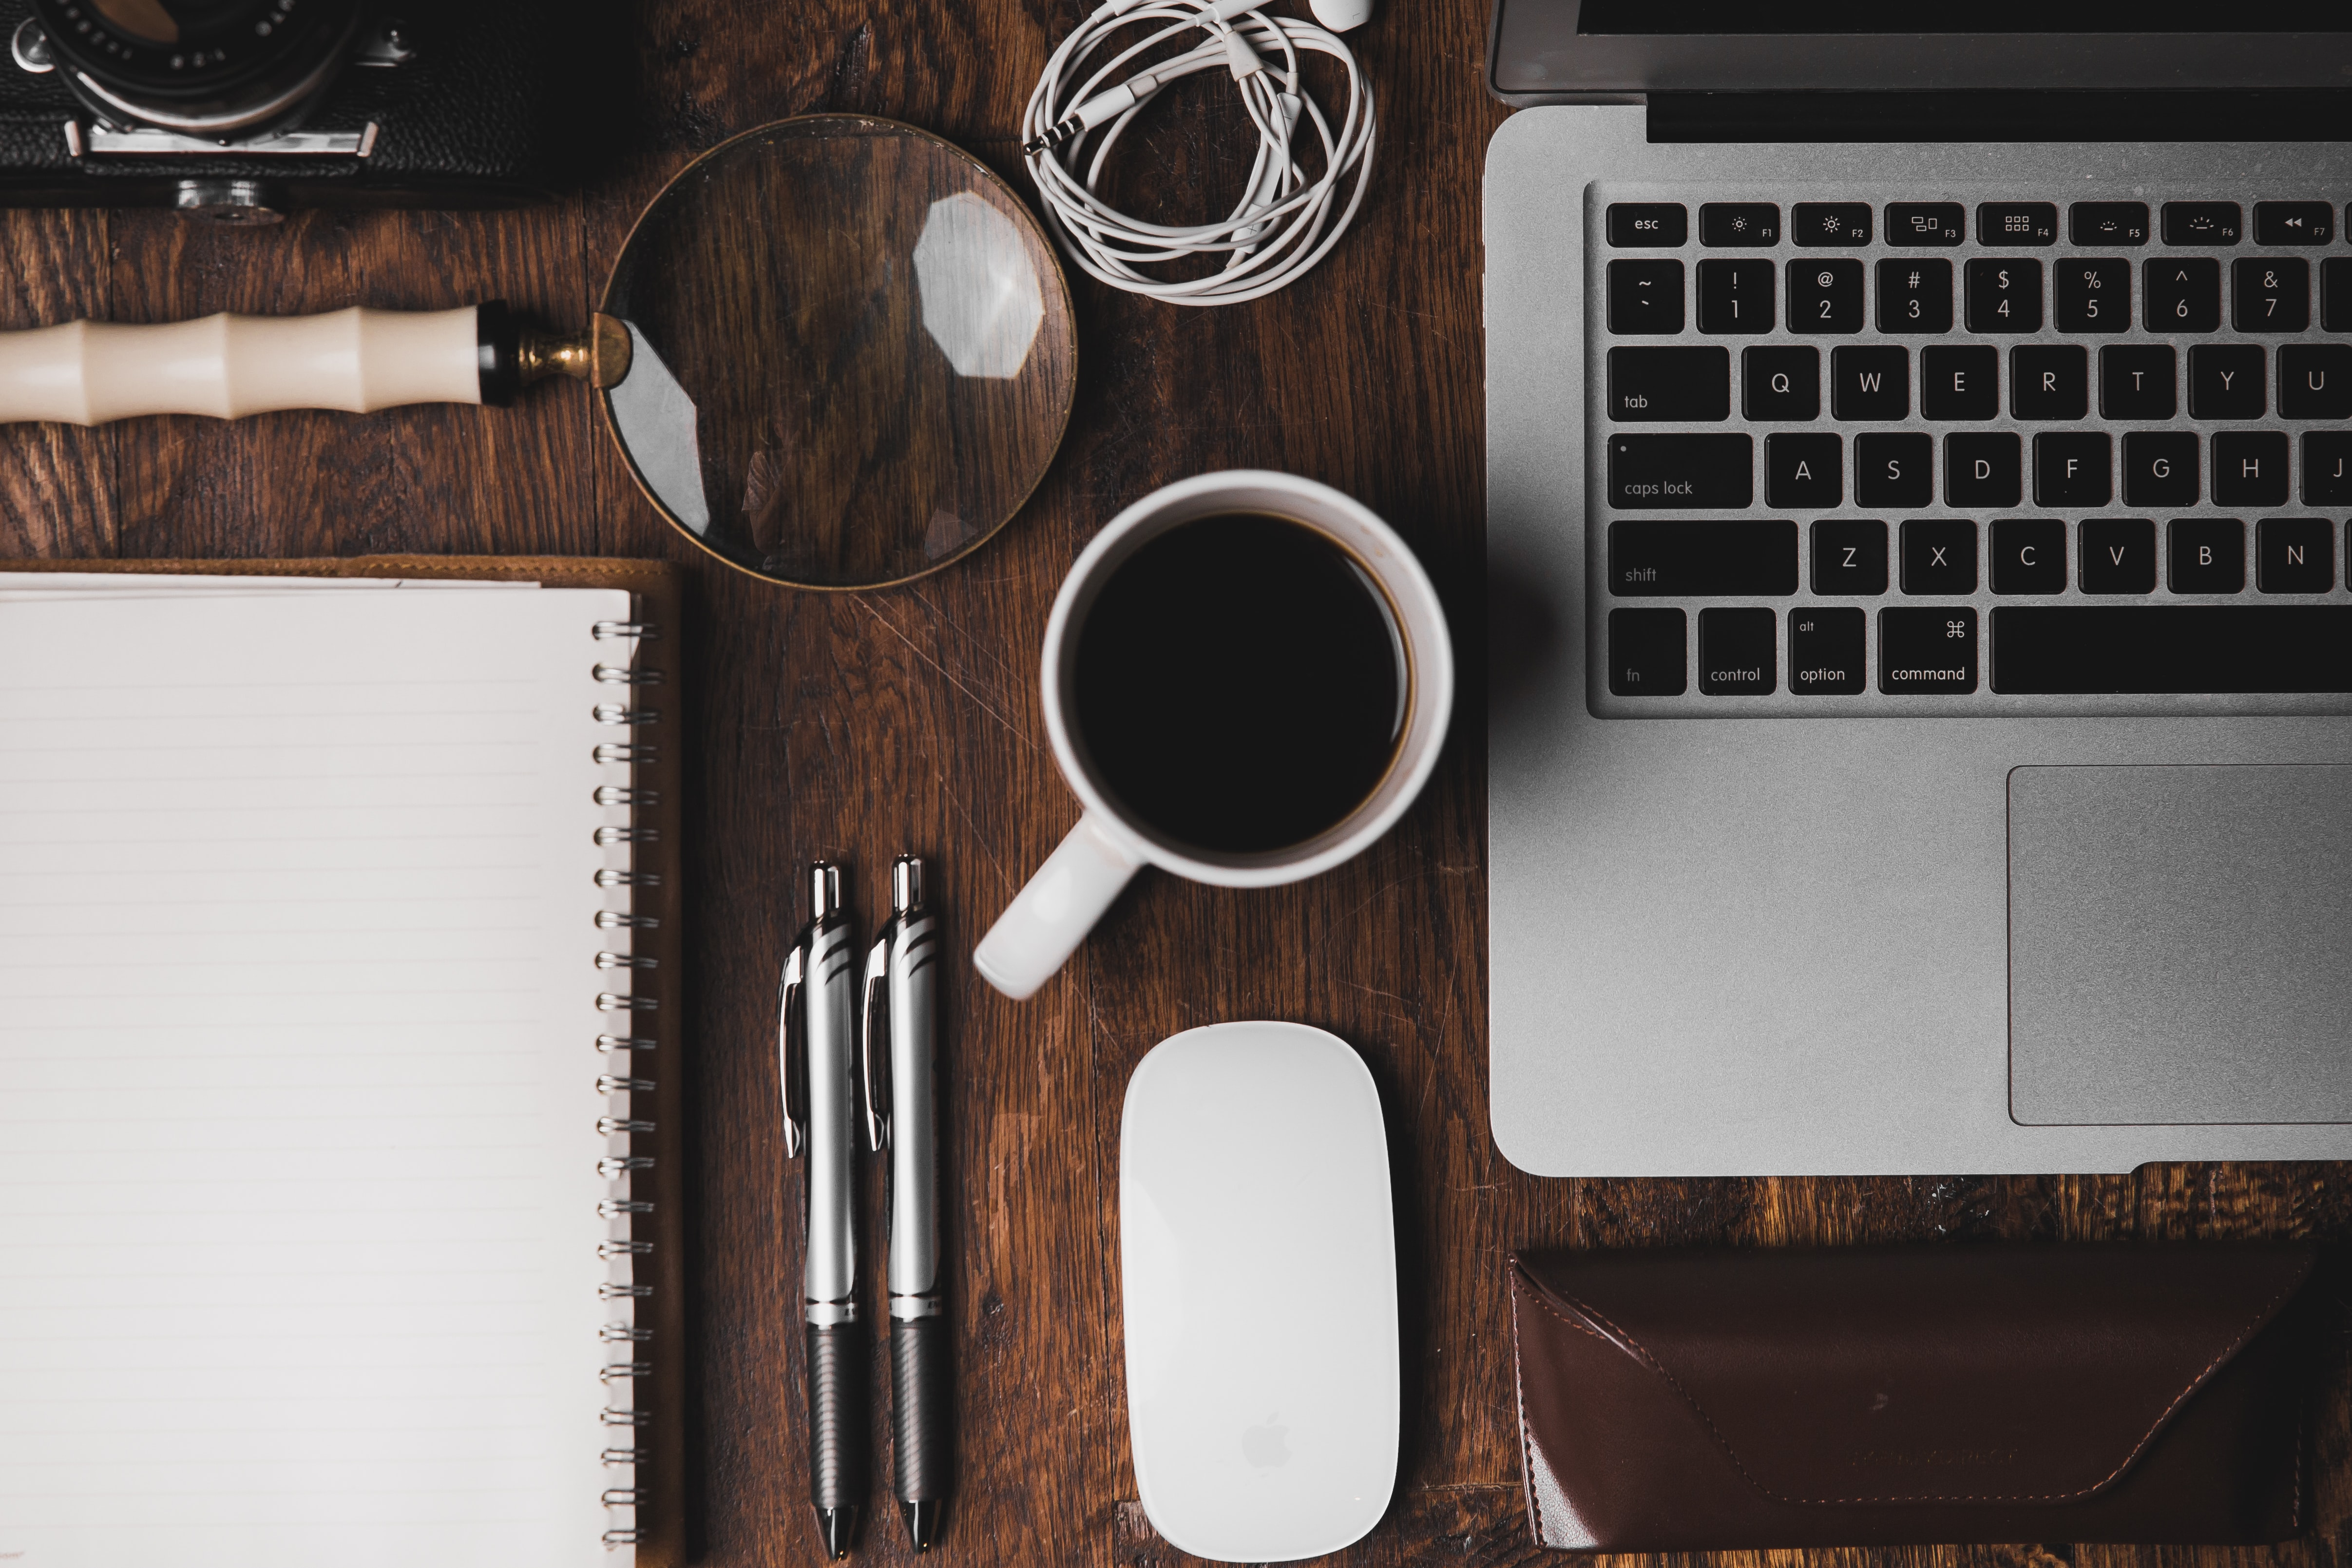 The top essentials for your coworking trip is a laptop, notebook, pens and coffee on top of a brown wooden table.